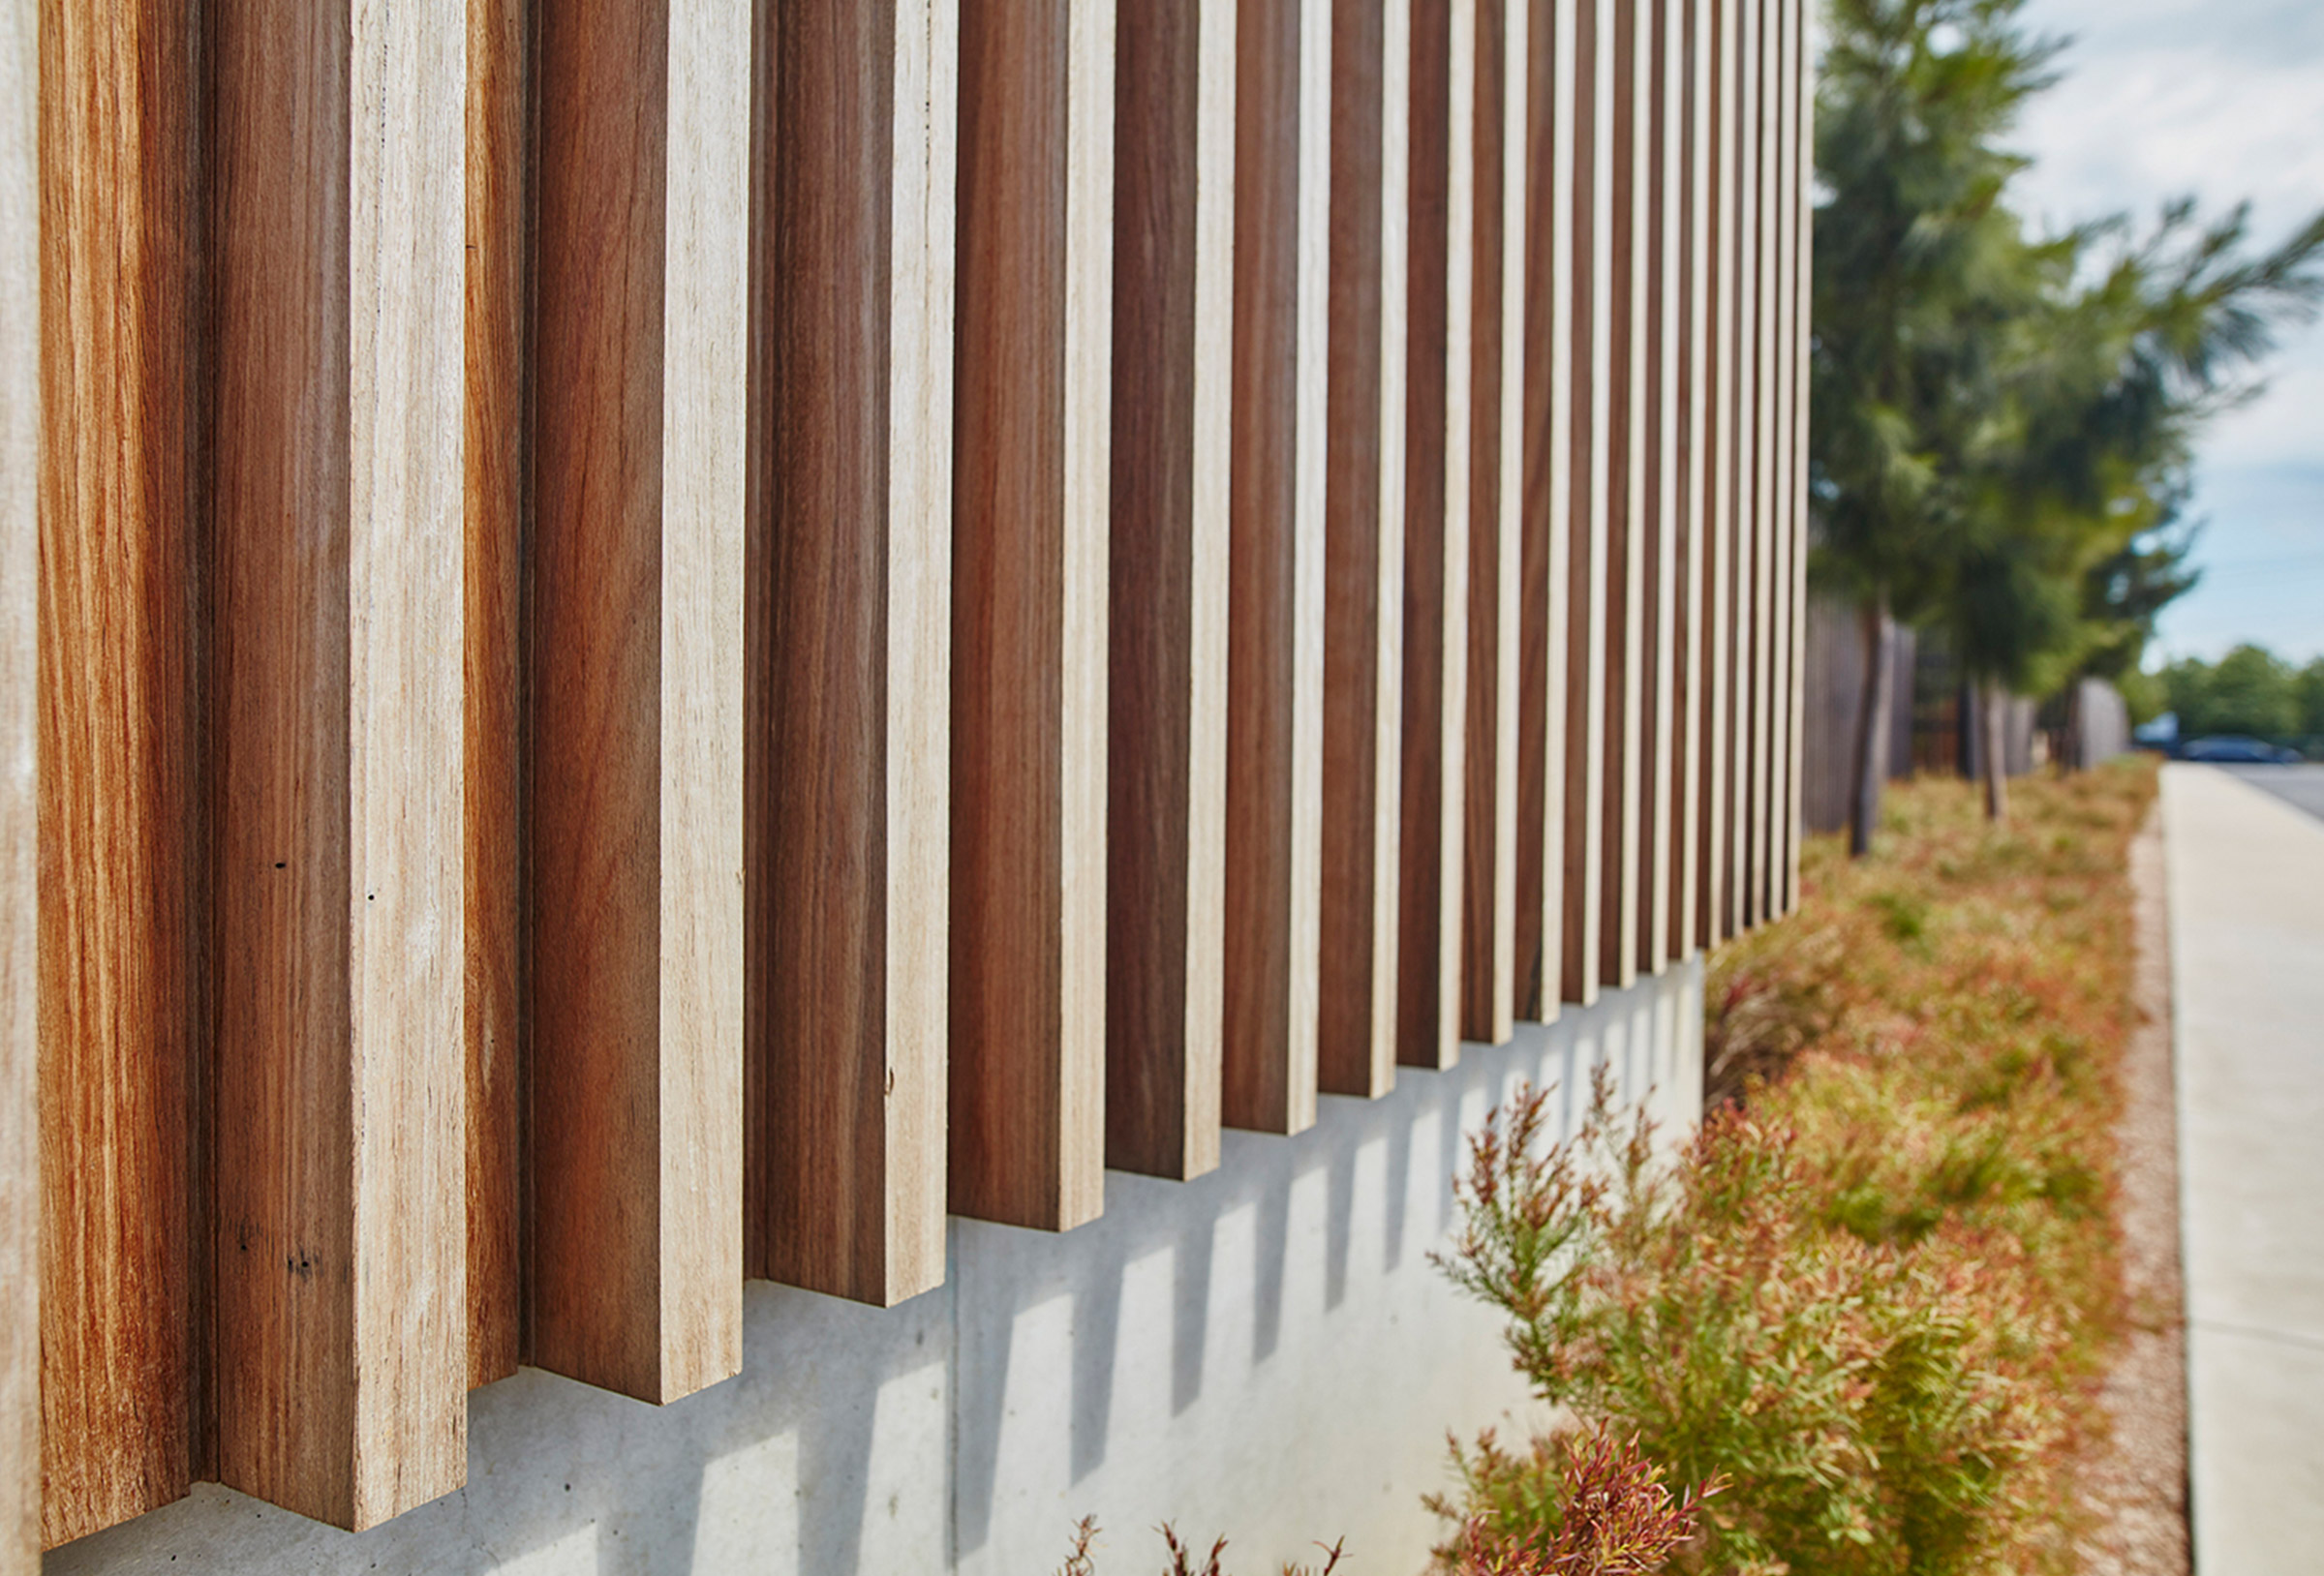 Sculptform - Battens on Cladding